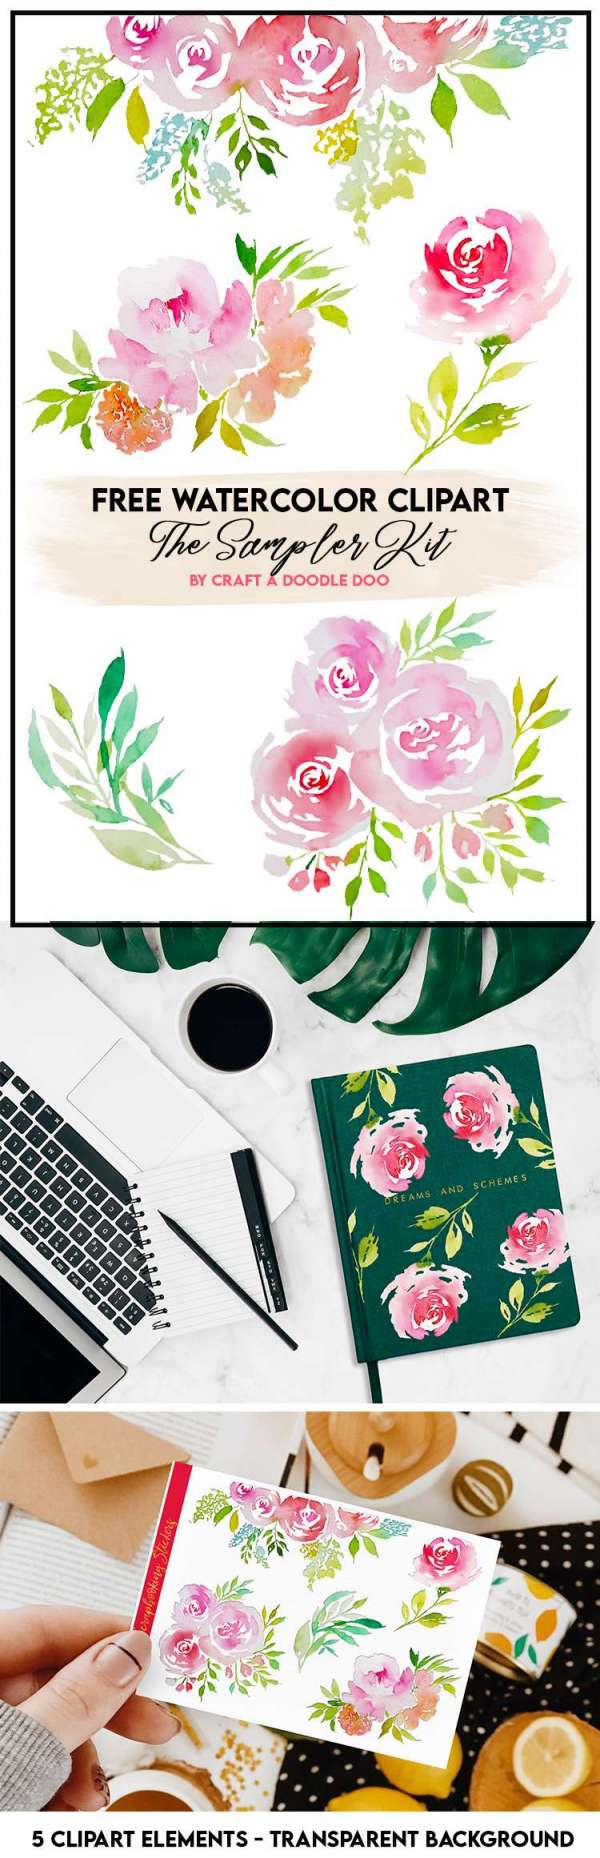 Floral and Foliage Watercolor Clipart